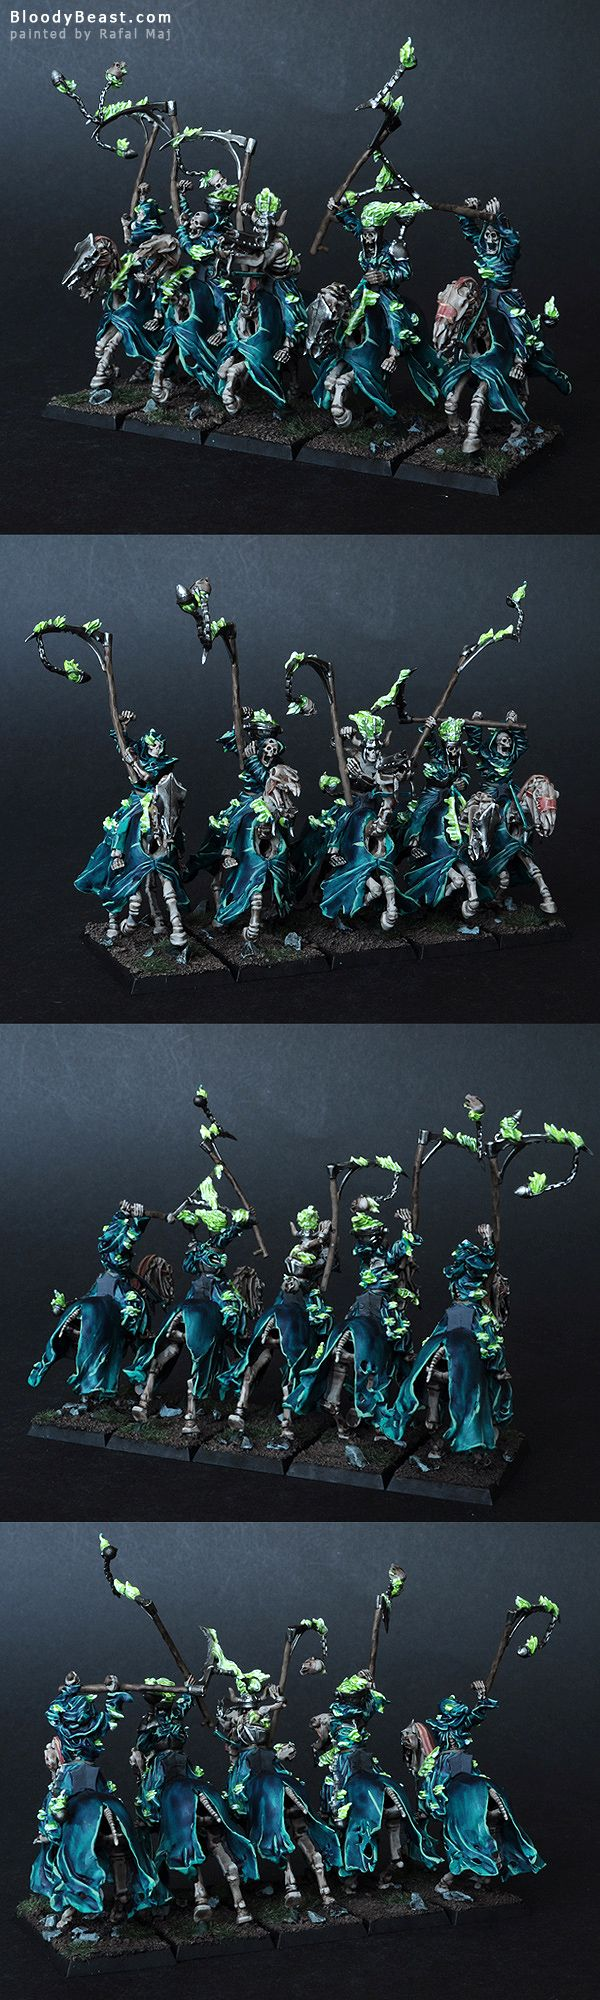 Vampire Counts Hexwraiths painted by Rafal Maj (BloodyBeast.com)